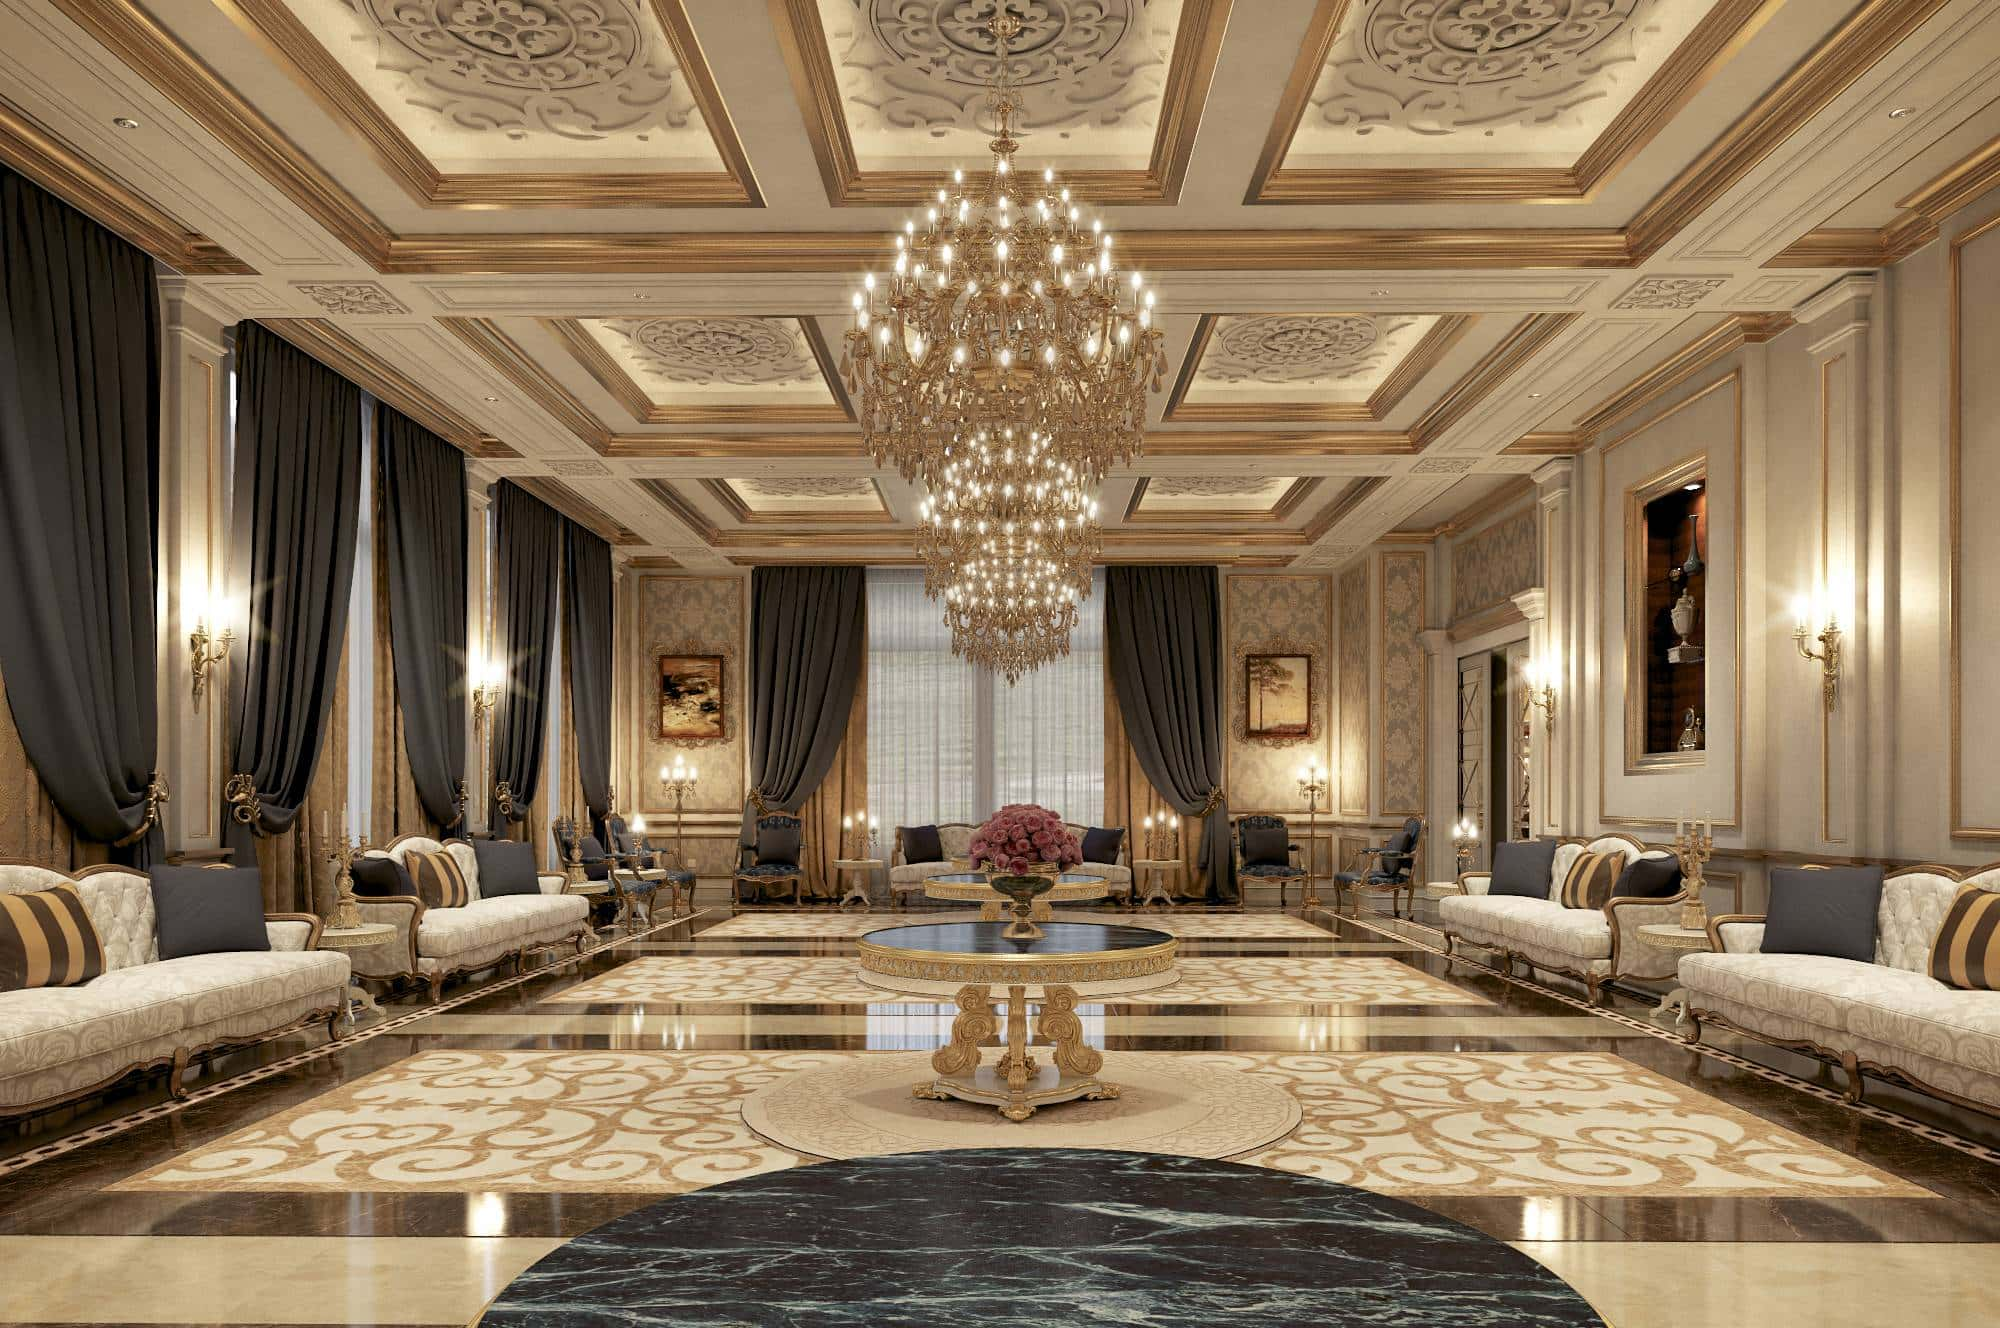 Villas & apartments - How to make the most out of villa interior design